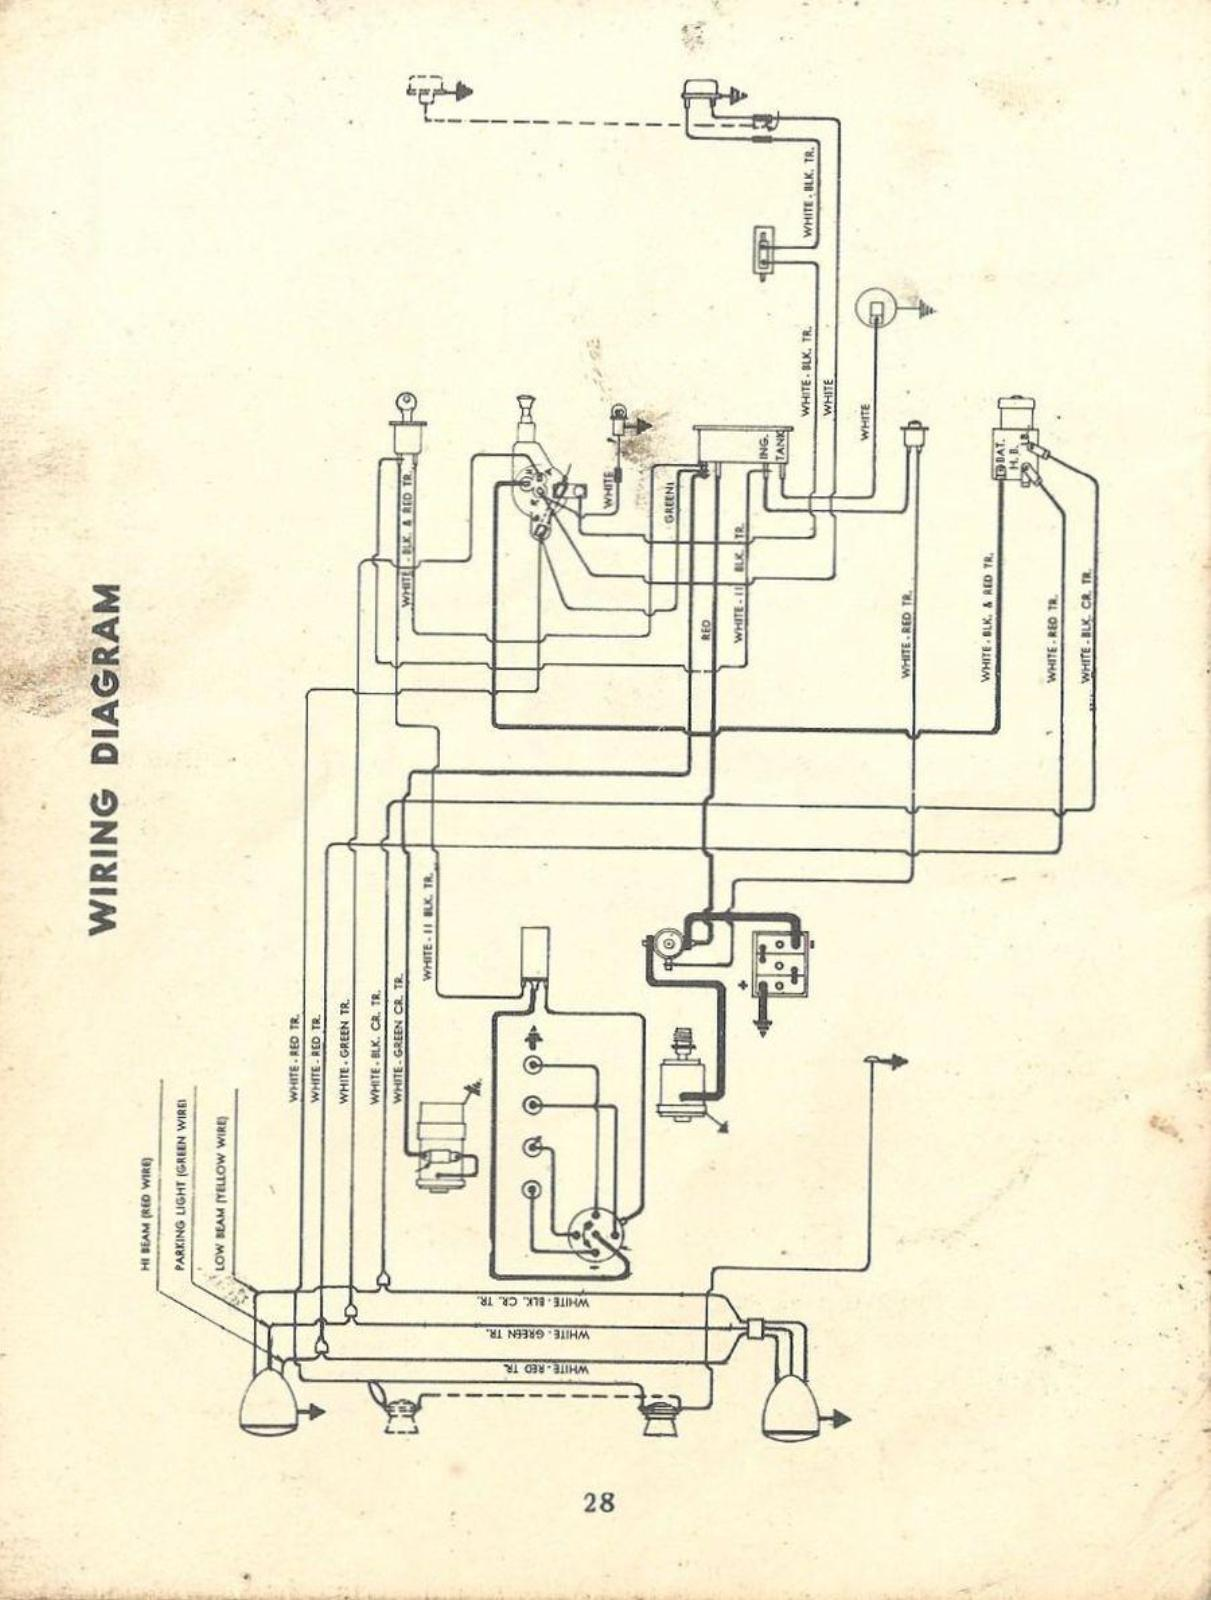 crosley wiring diagram wiring diagram site crosley wiring diagram wiring diagrams best residential wiring diagrams crosley wiring diagram